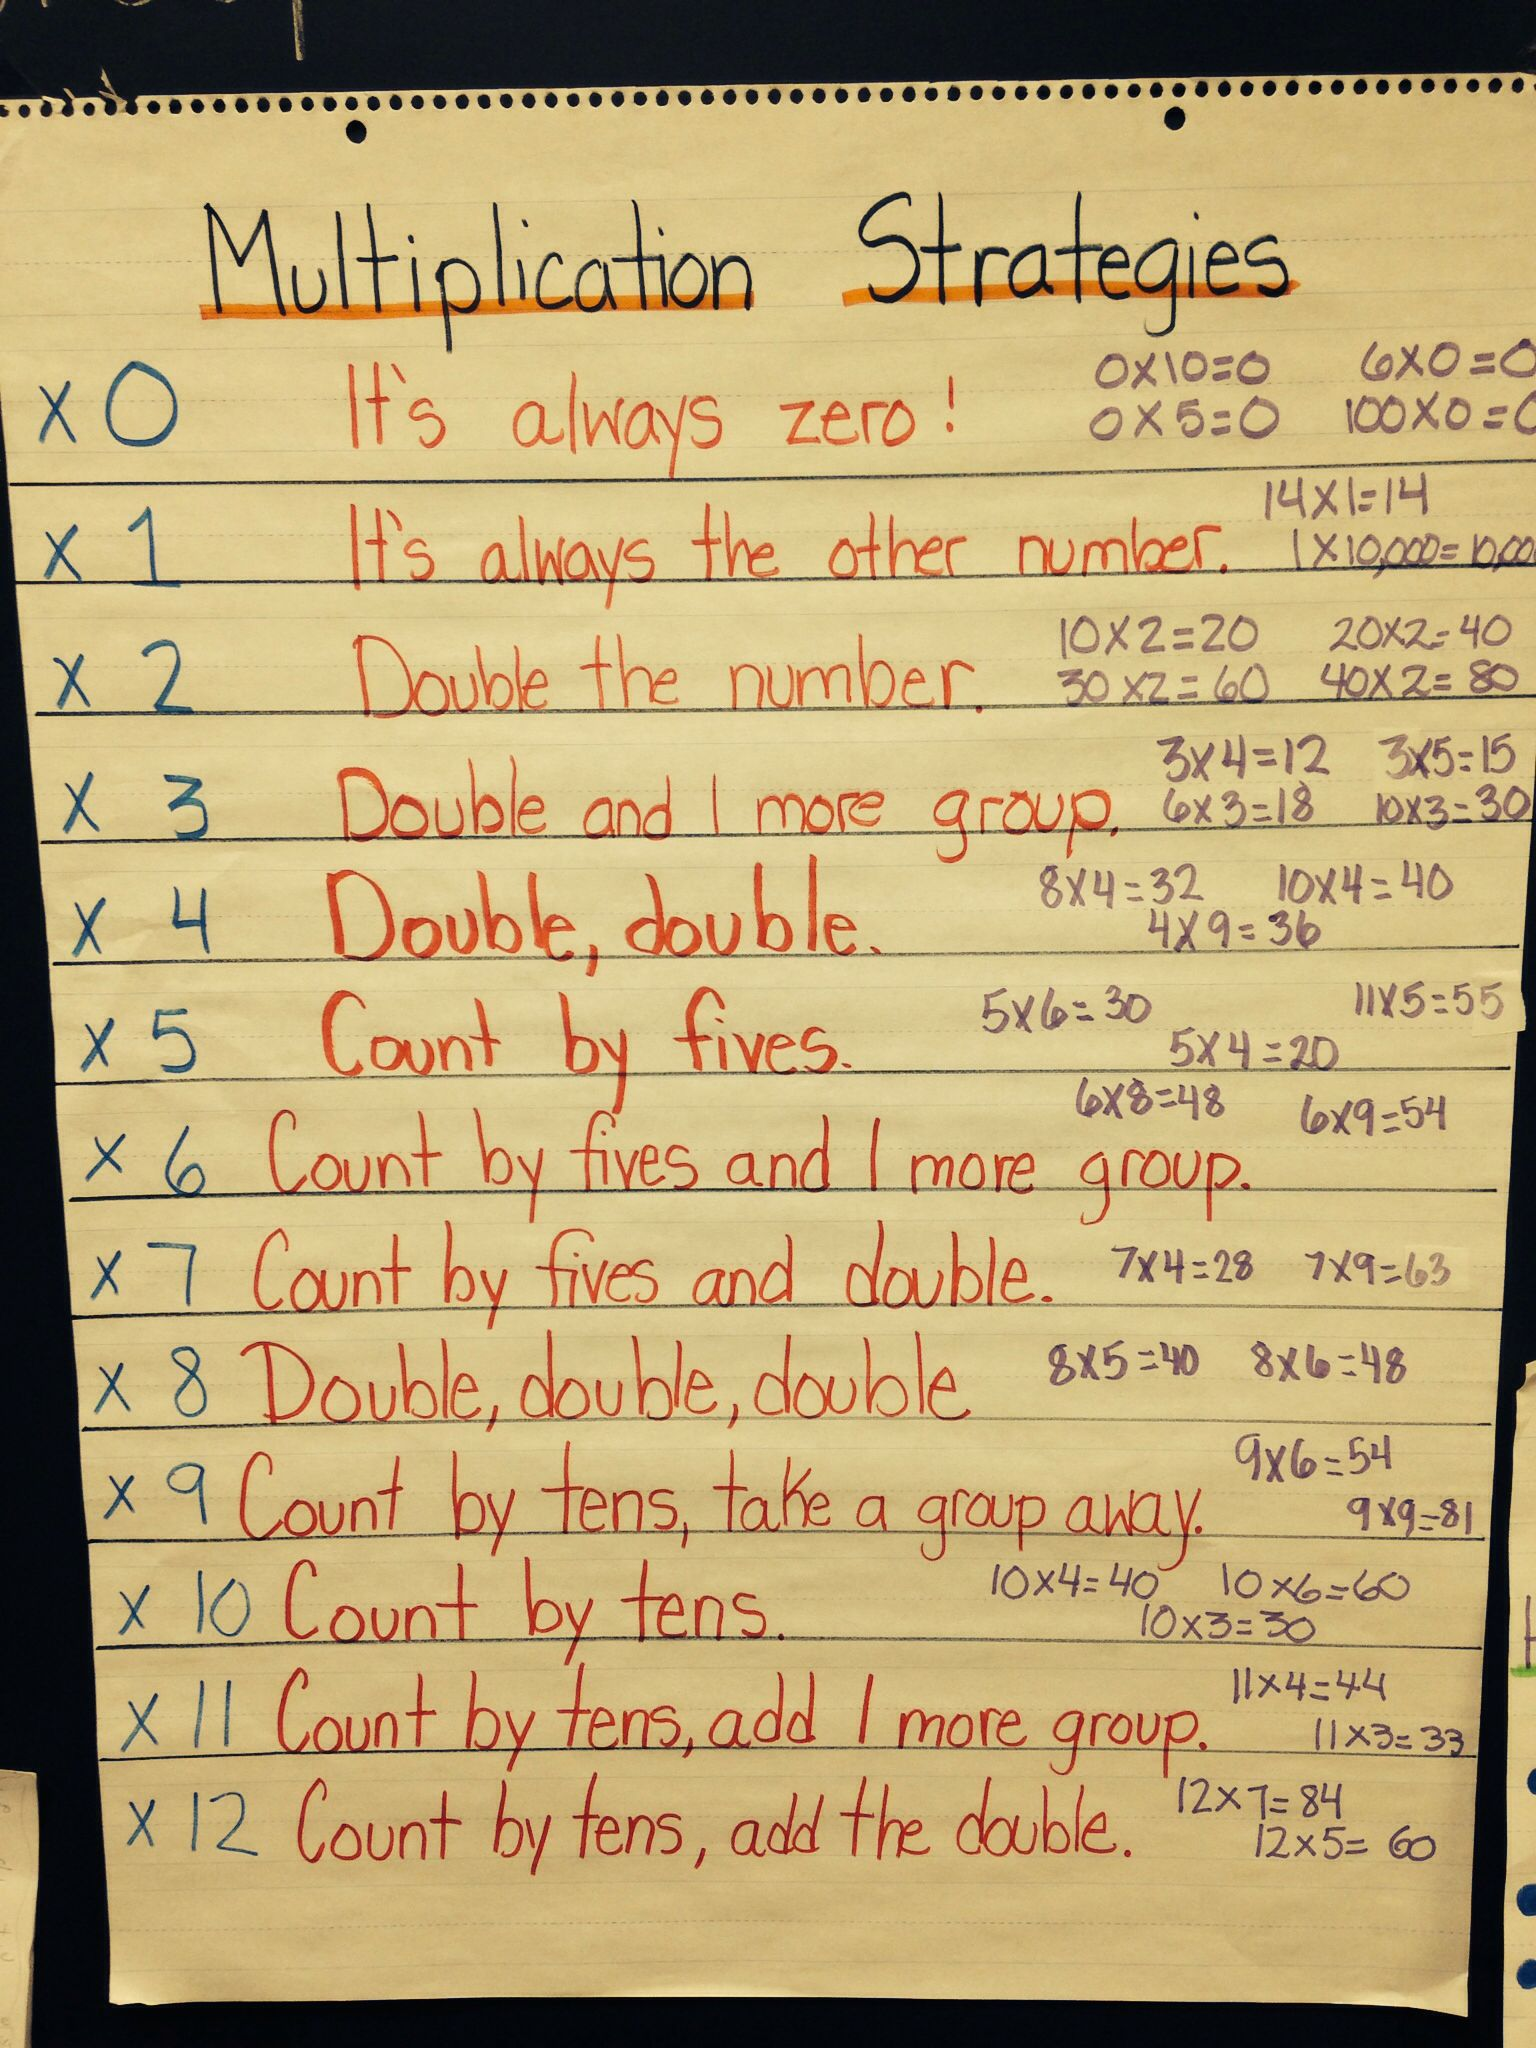 Multiplication fact strategies math multiplication division multiplication fact strategies thinking it is just easier to memorize but might help some students gamestrikefo Gallery